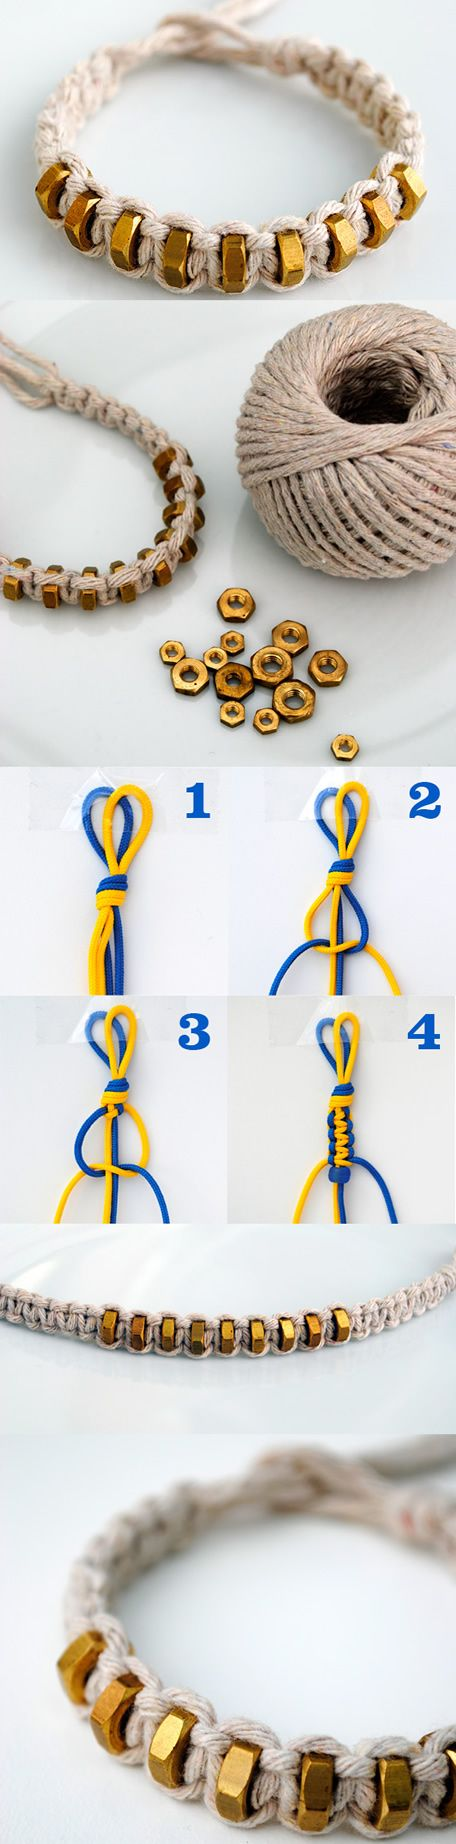 Diy Bracelet With Nuts Step By Step